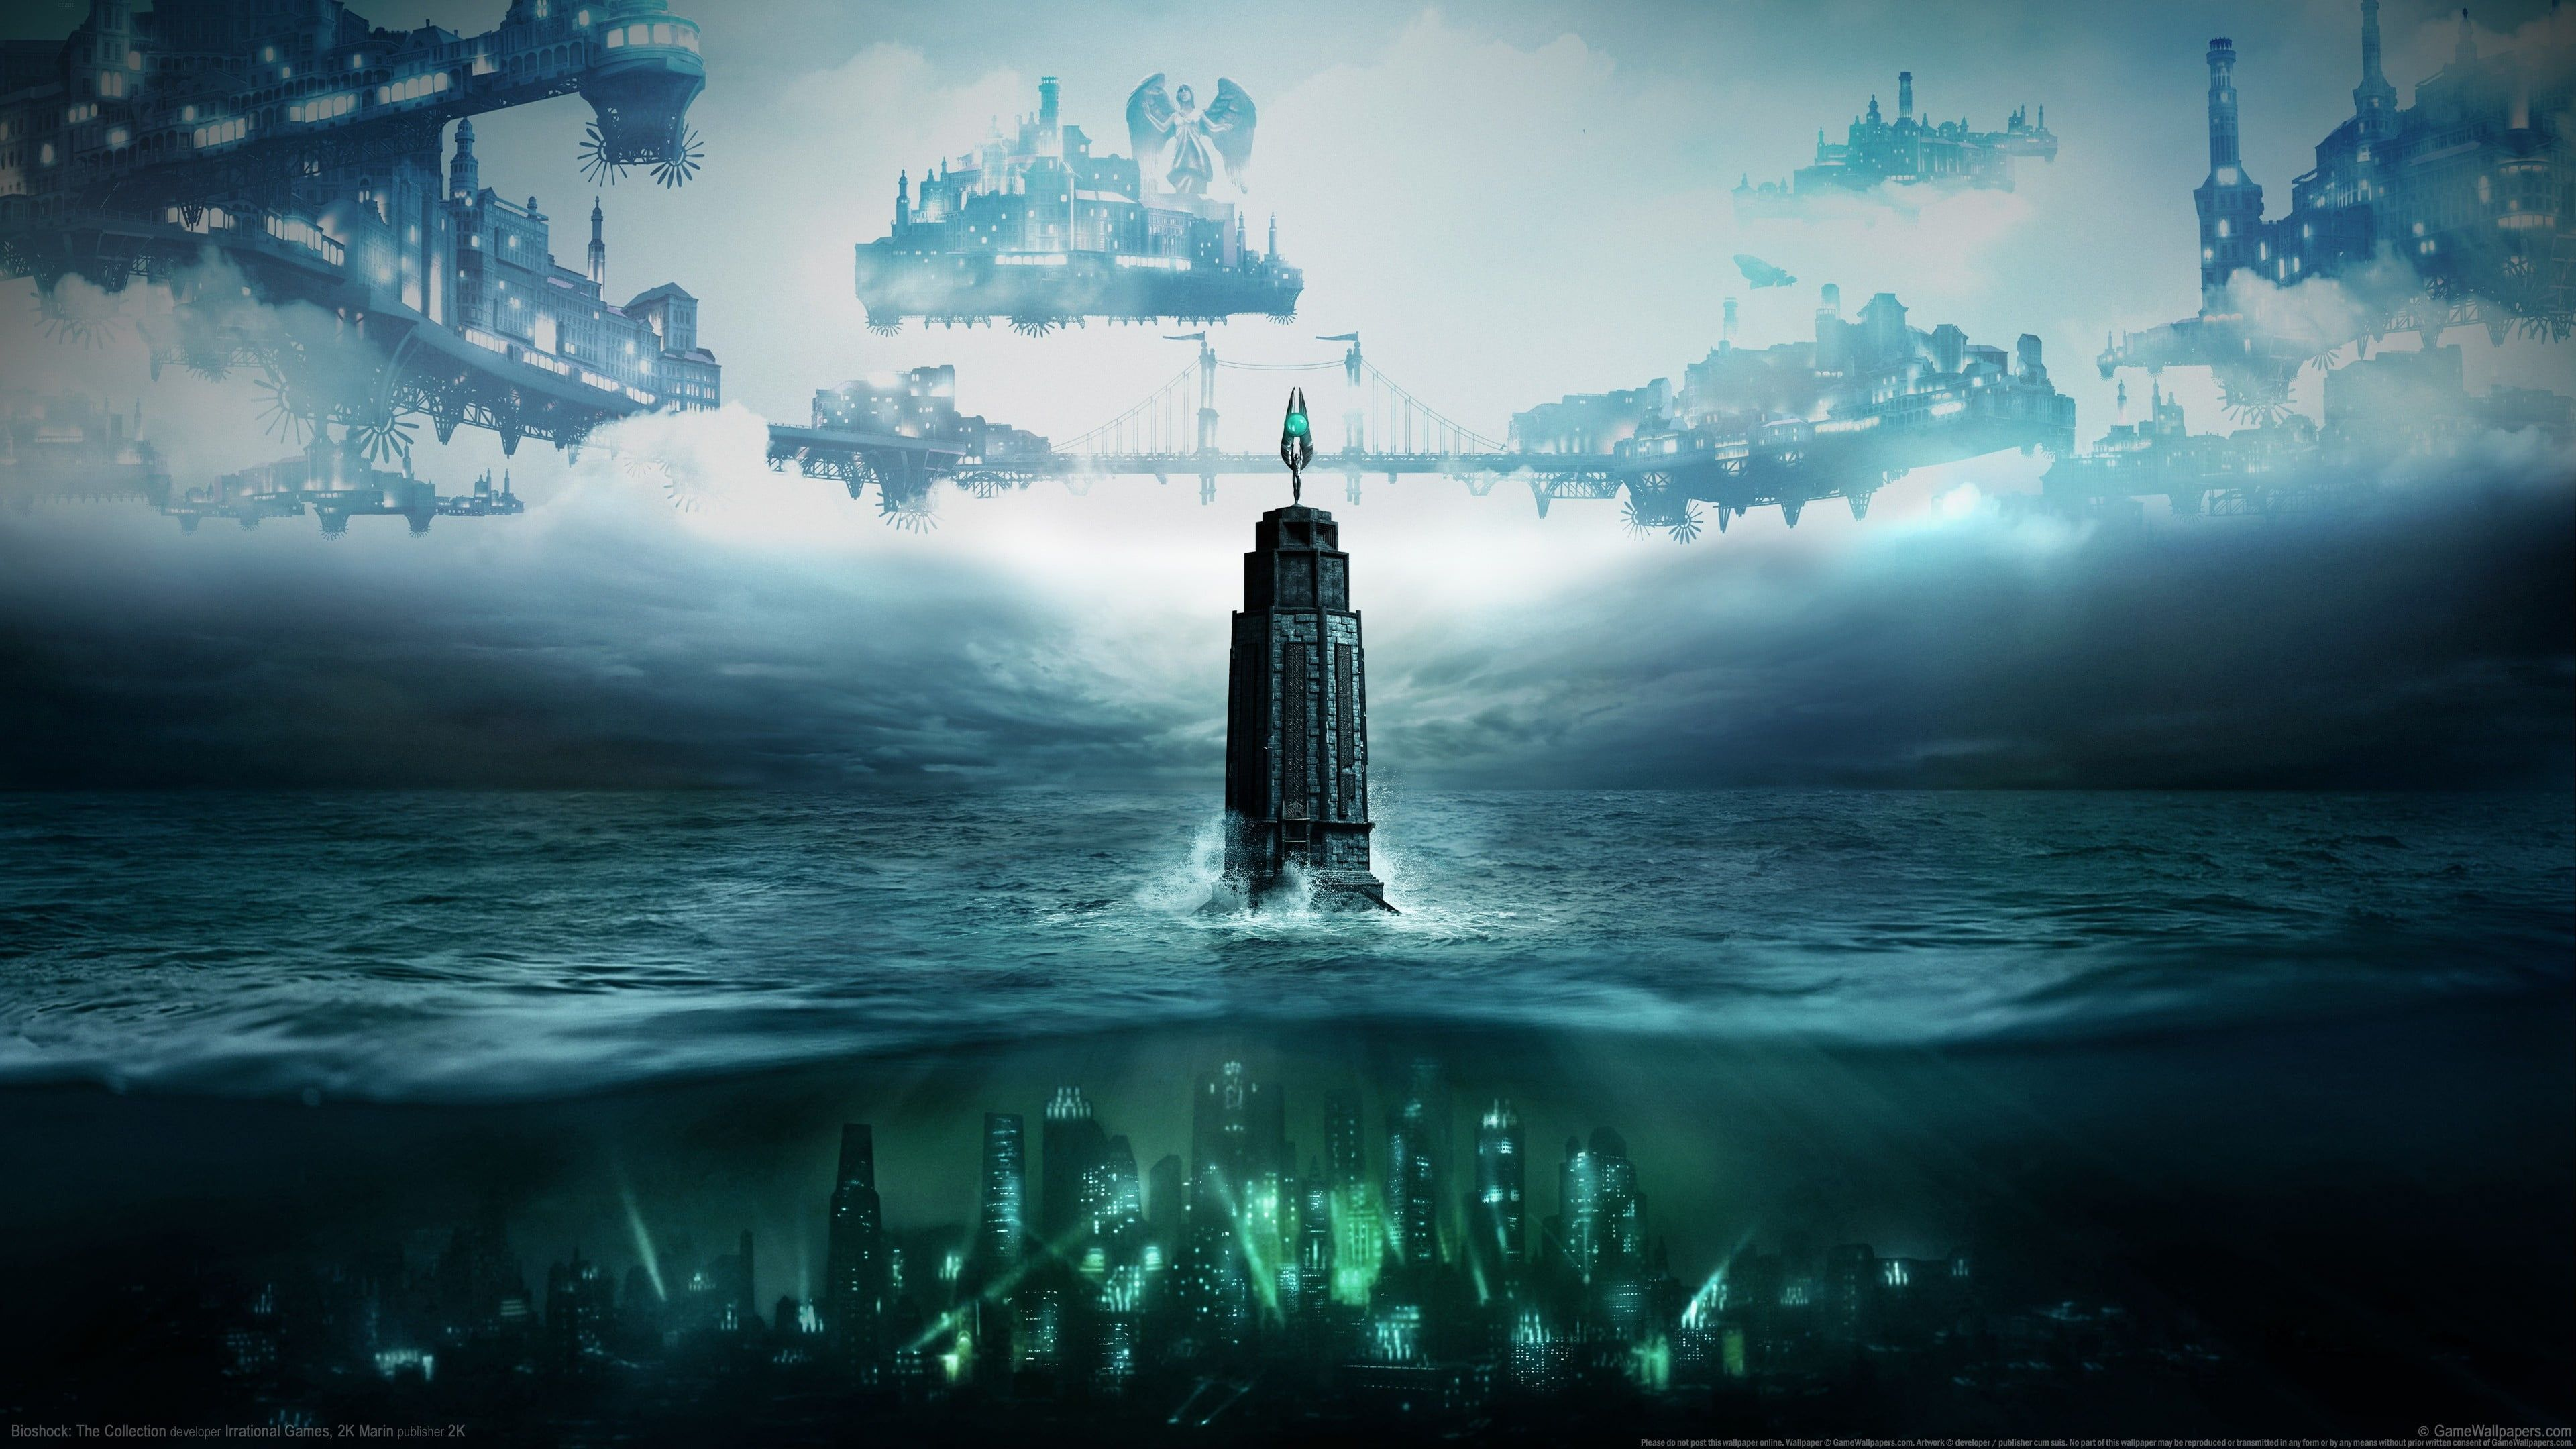 Underwater City And Aircrafts Digital Wallpaper Bioshock Tower Columbia Video Games 4k Wallpaper Hdwallpaper In 2020 Bioshock Bioshock Game Bioshock Collection